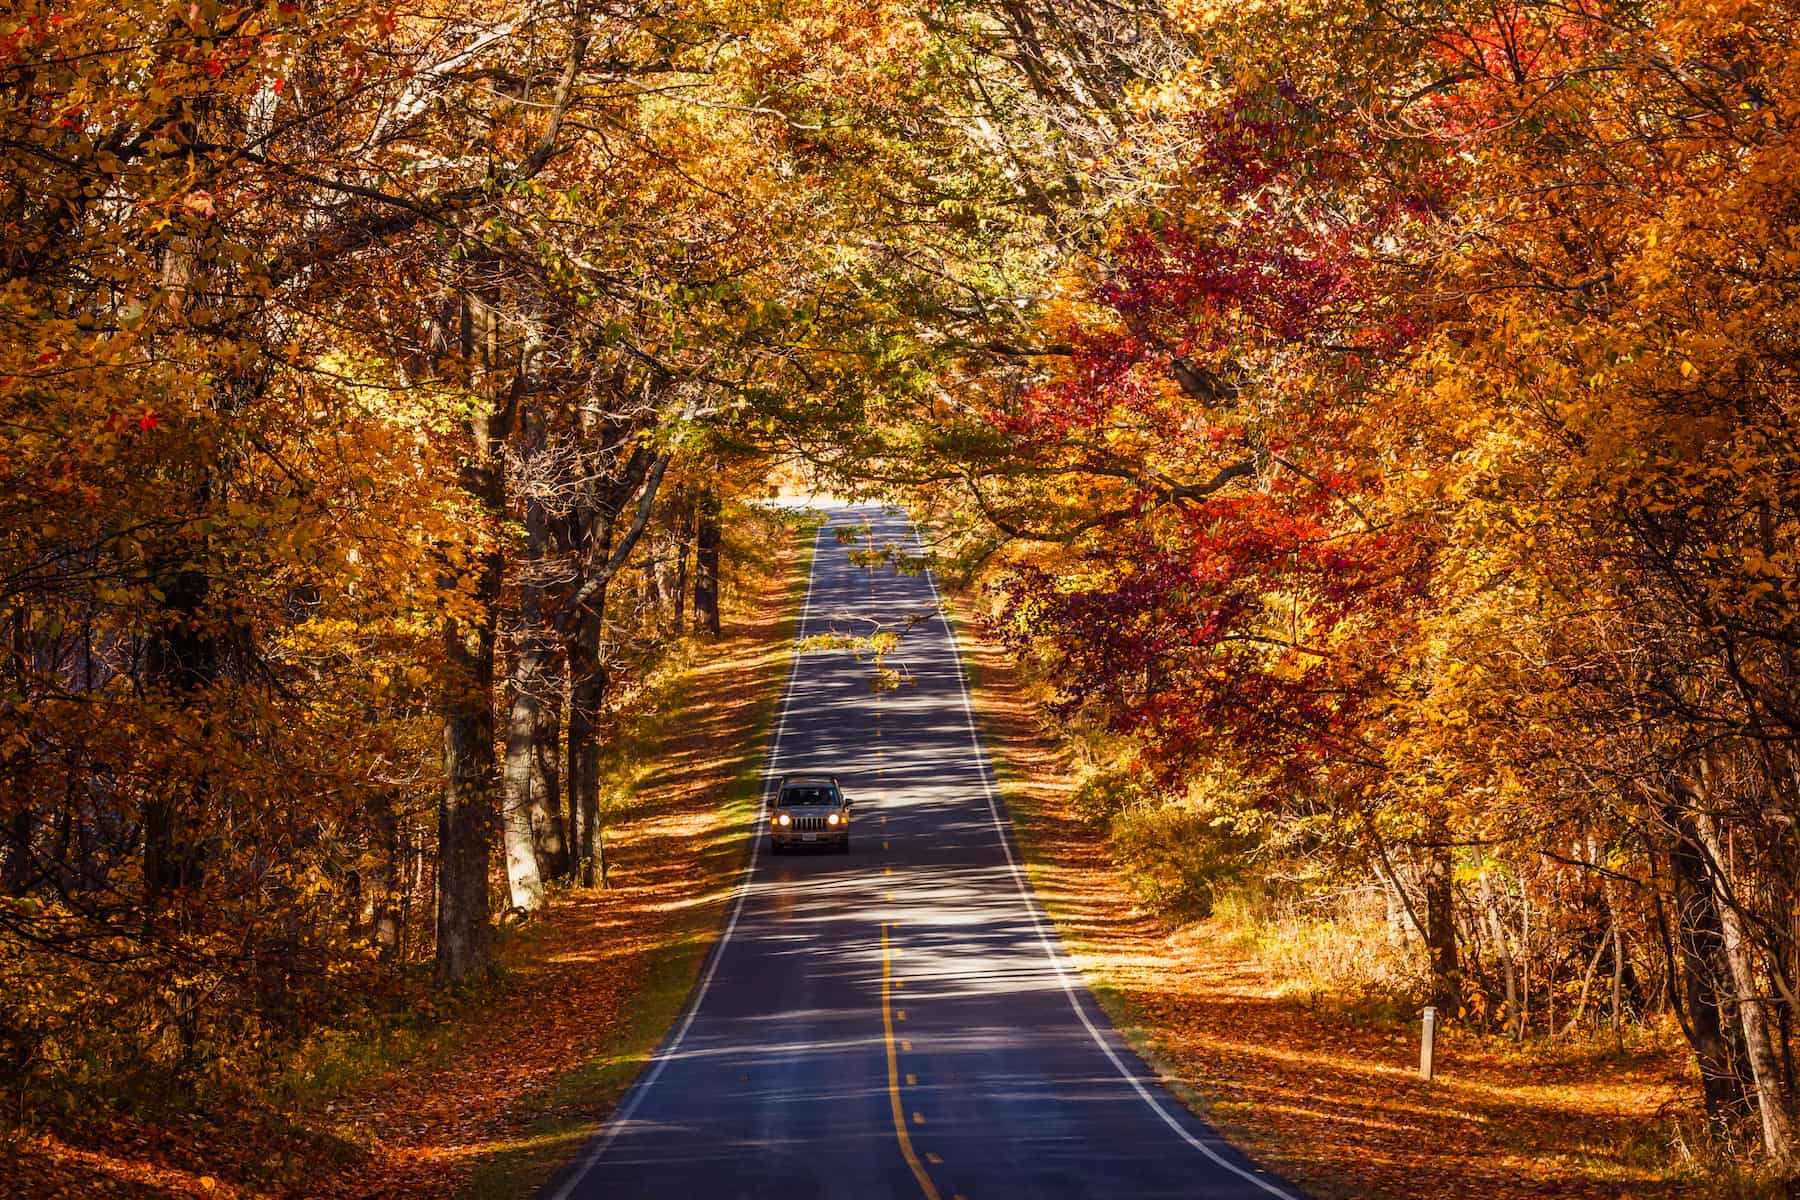 The Golden fall foliage over Skyline drive in Shenandoah National Park.